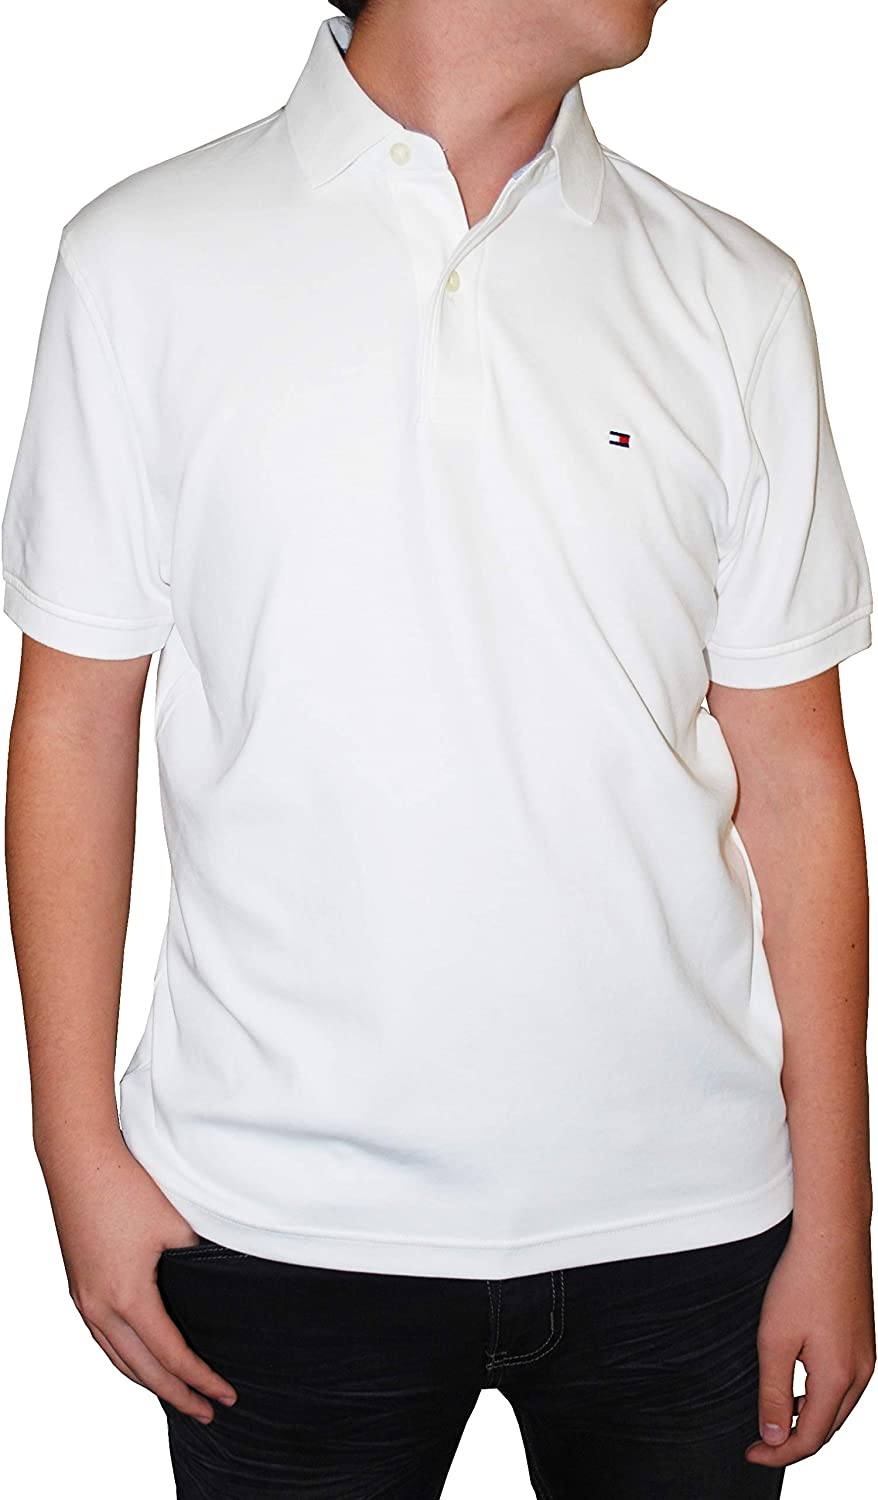 Tommy Hilfiger Men's Paul Raleigh Mall Max 84% OFF Cotton Classic Fit Shirt Polo